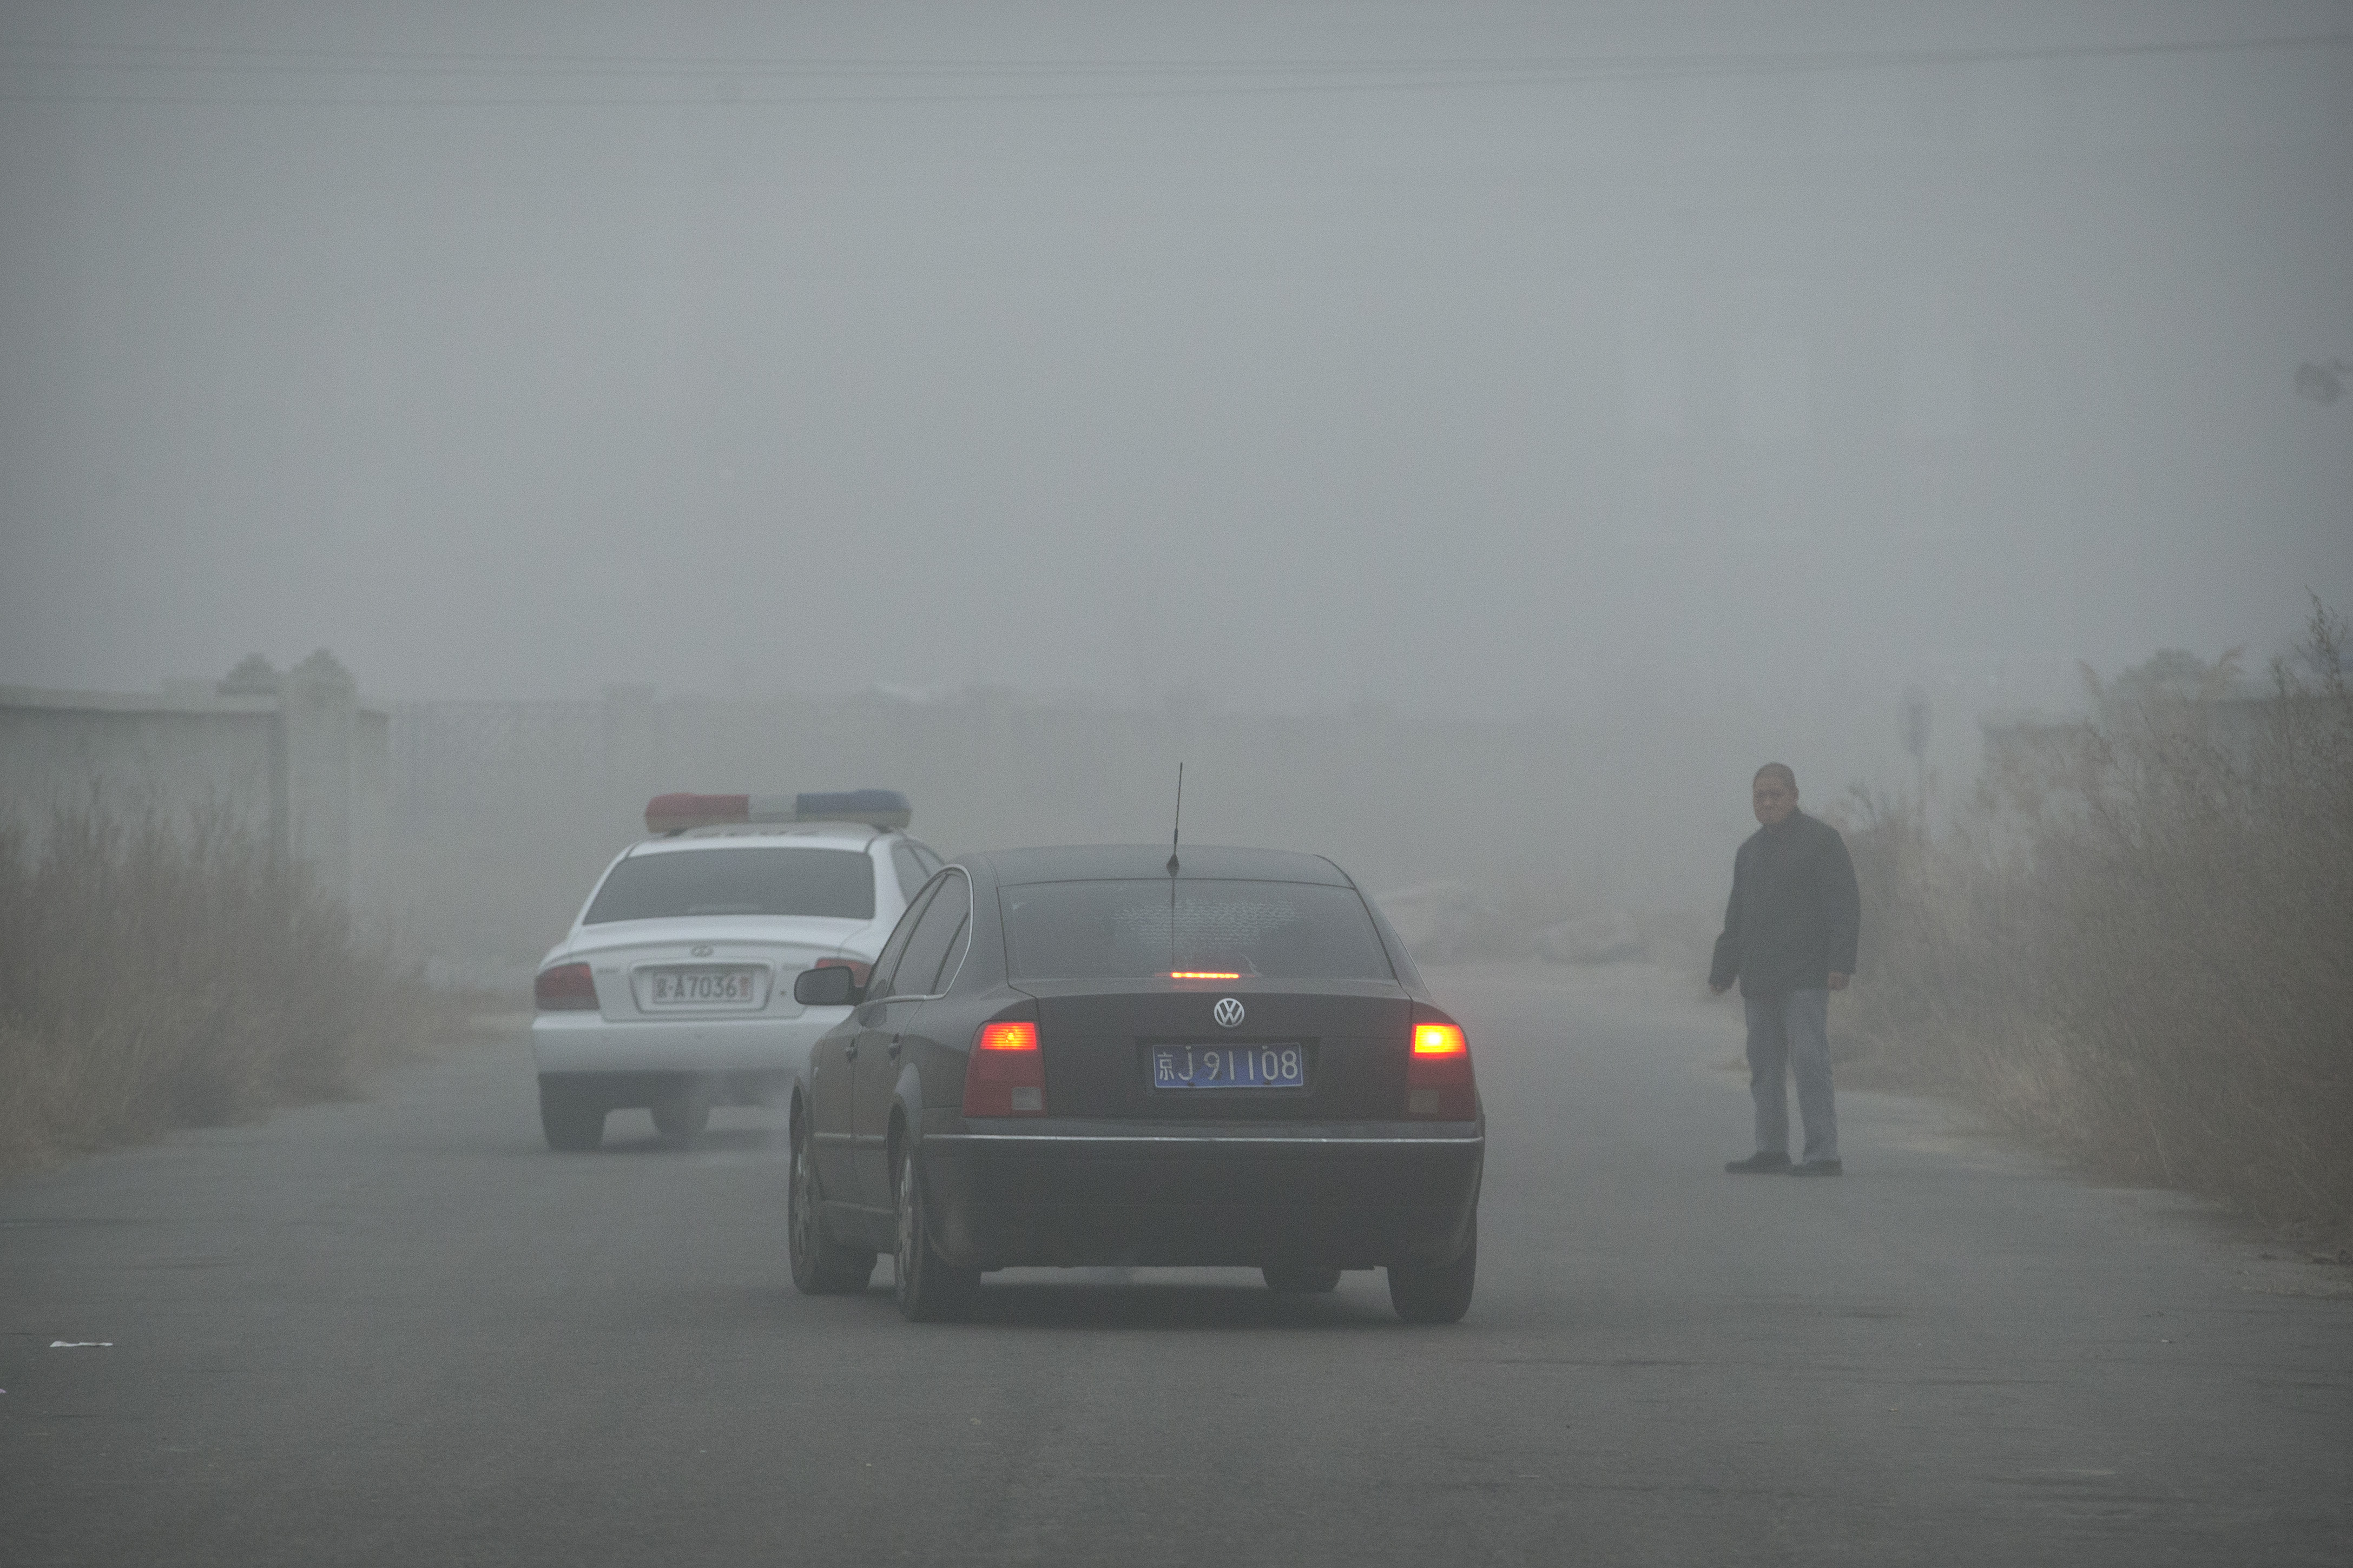 A passerby watches a car as it leaves the Beijing No. 1 Detention Center on the outskirts of Beijing, China, Dec. 22, 2015.